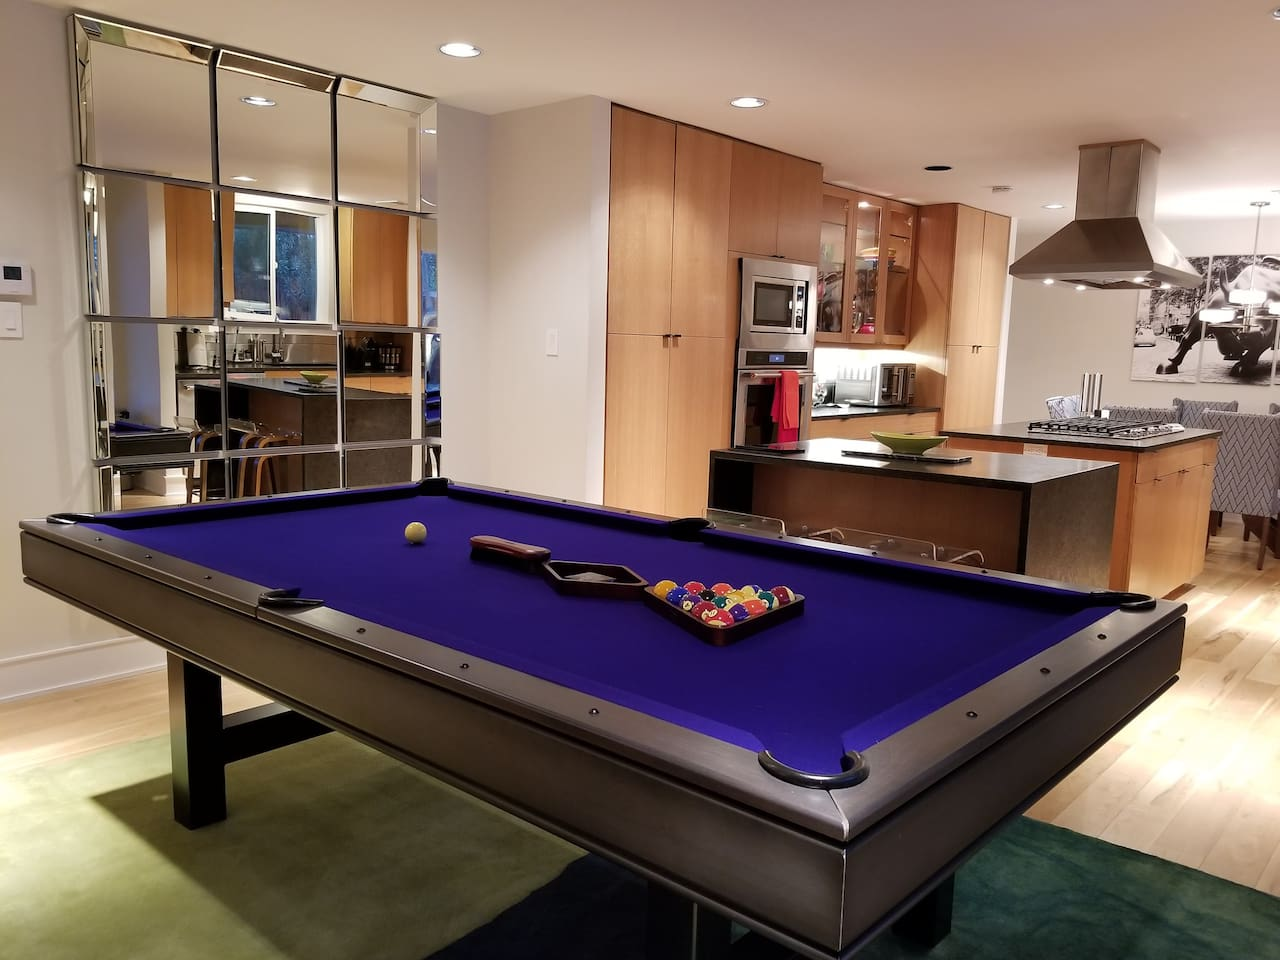 Meadow HouseModern Luxury EstatePoolNear Uptown Houses For Rent - Pool table rental dallas